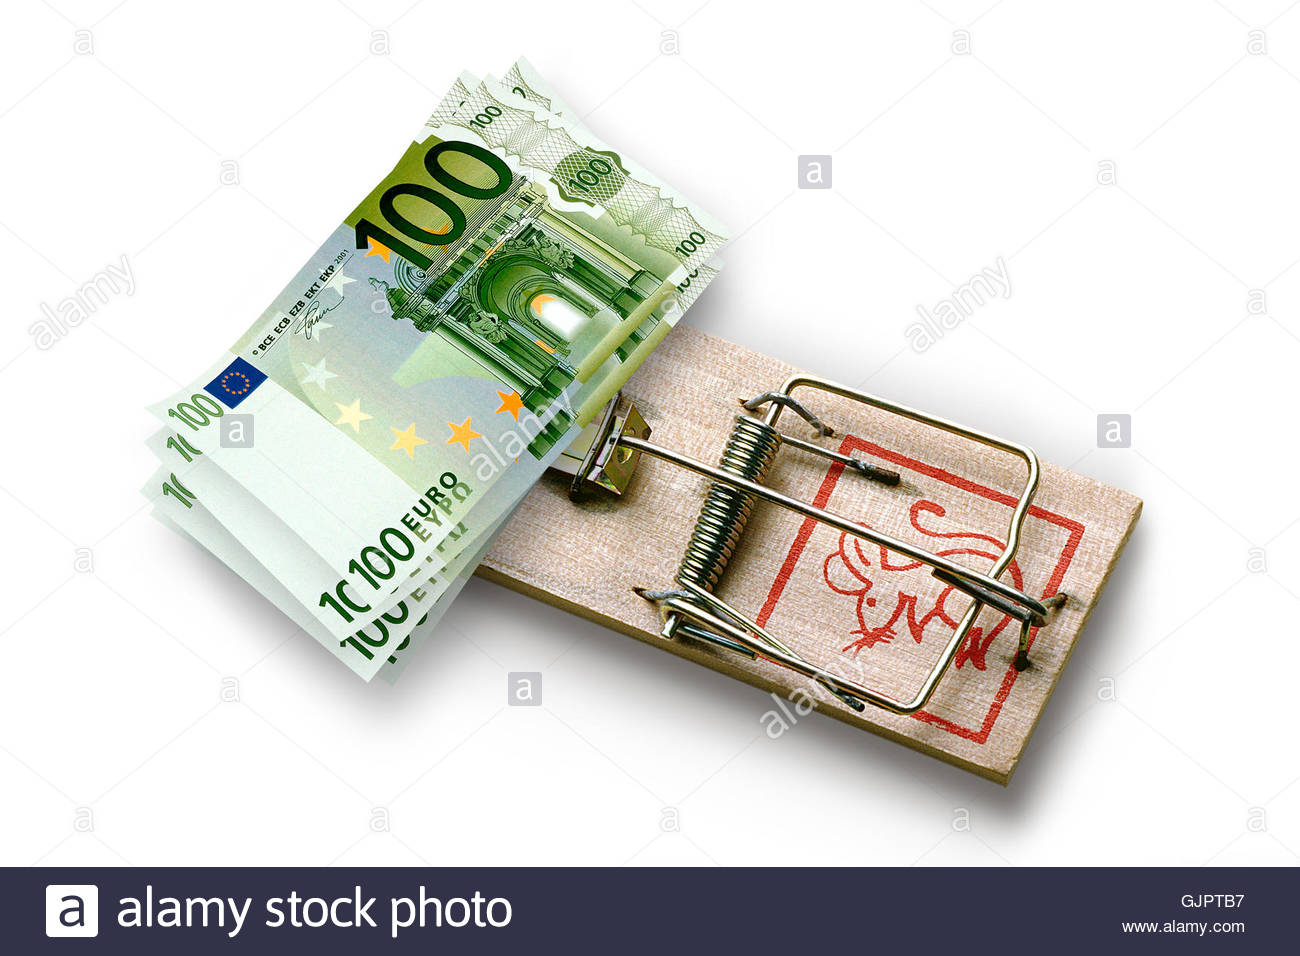 Euro banknotes on a mousetrap as bait. - Stock Image